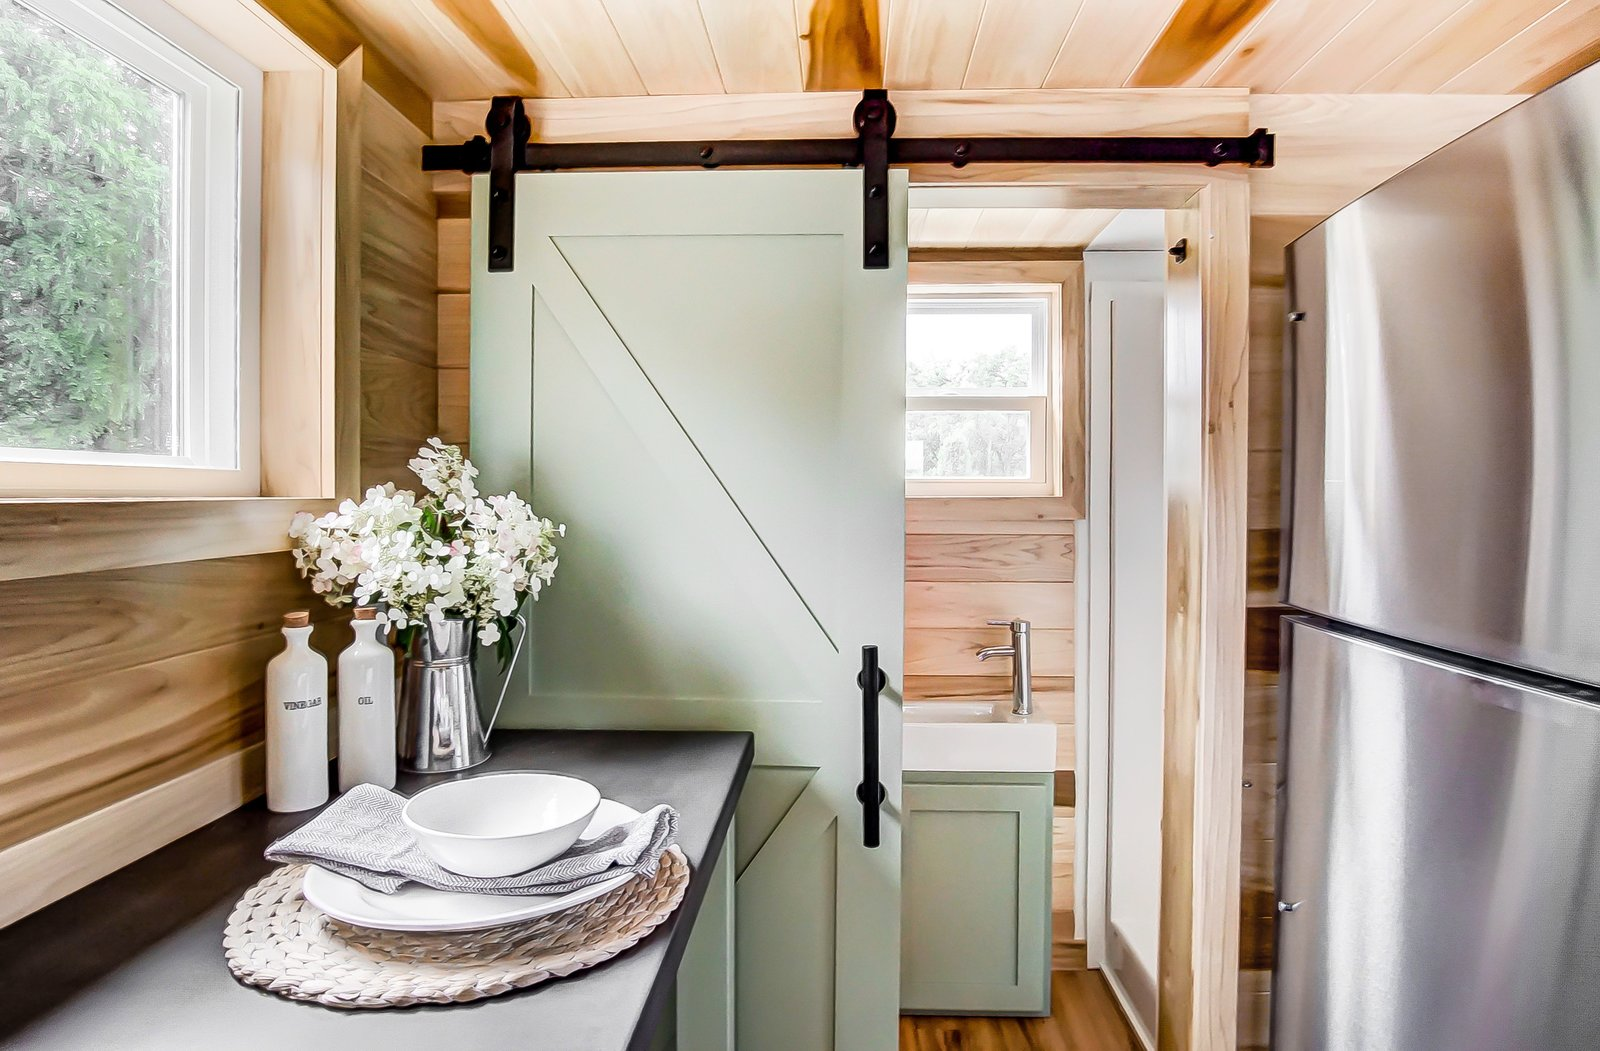 Doors, Sliding Door Type, Wood, and Interior Behind a sliding barn-style door is a bathroom with a shower and toilet.     Photo 10 of 11 in This 270-Square-Foot Tiny Home Is Now Up For Grabs at $89K